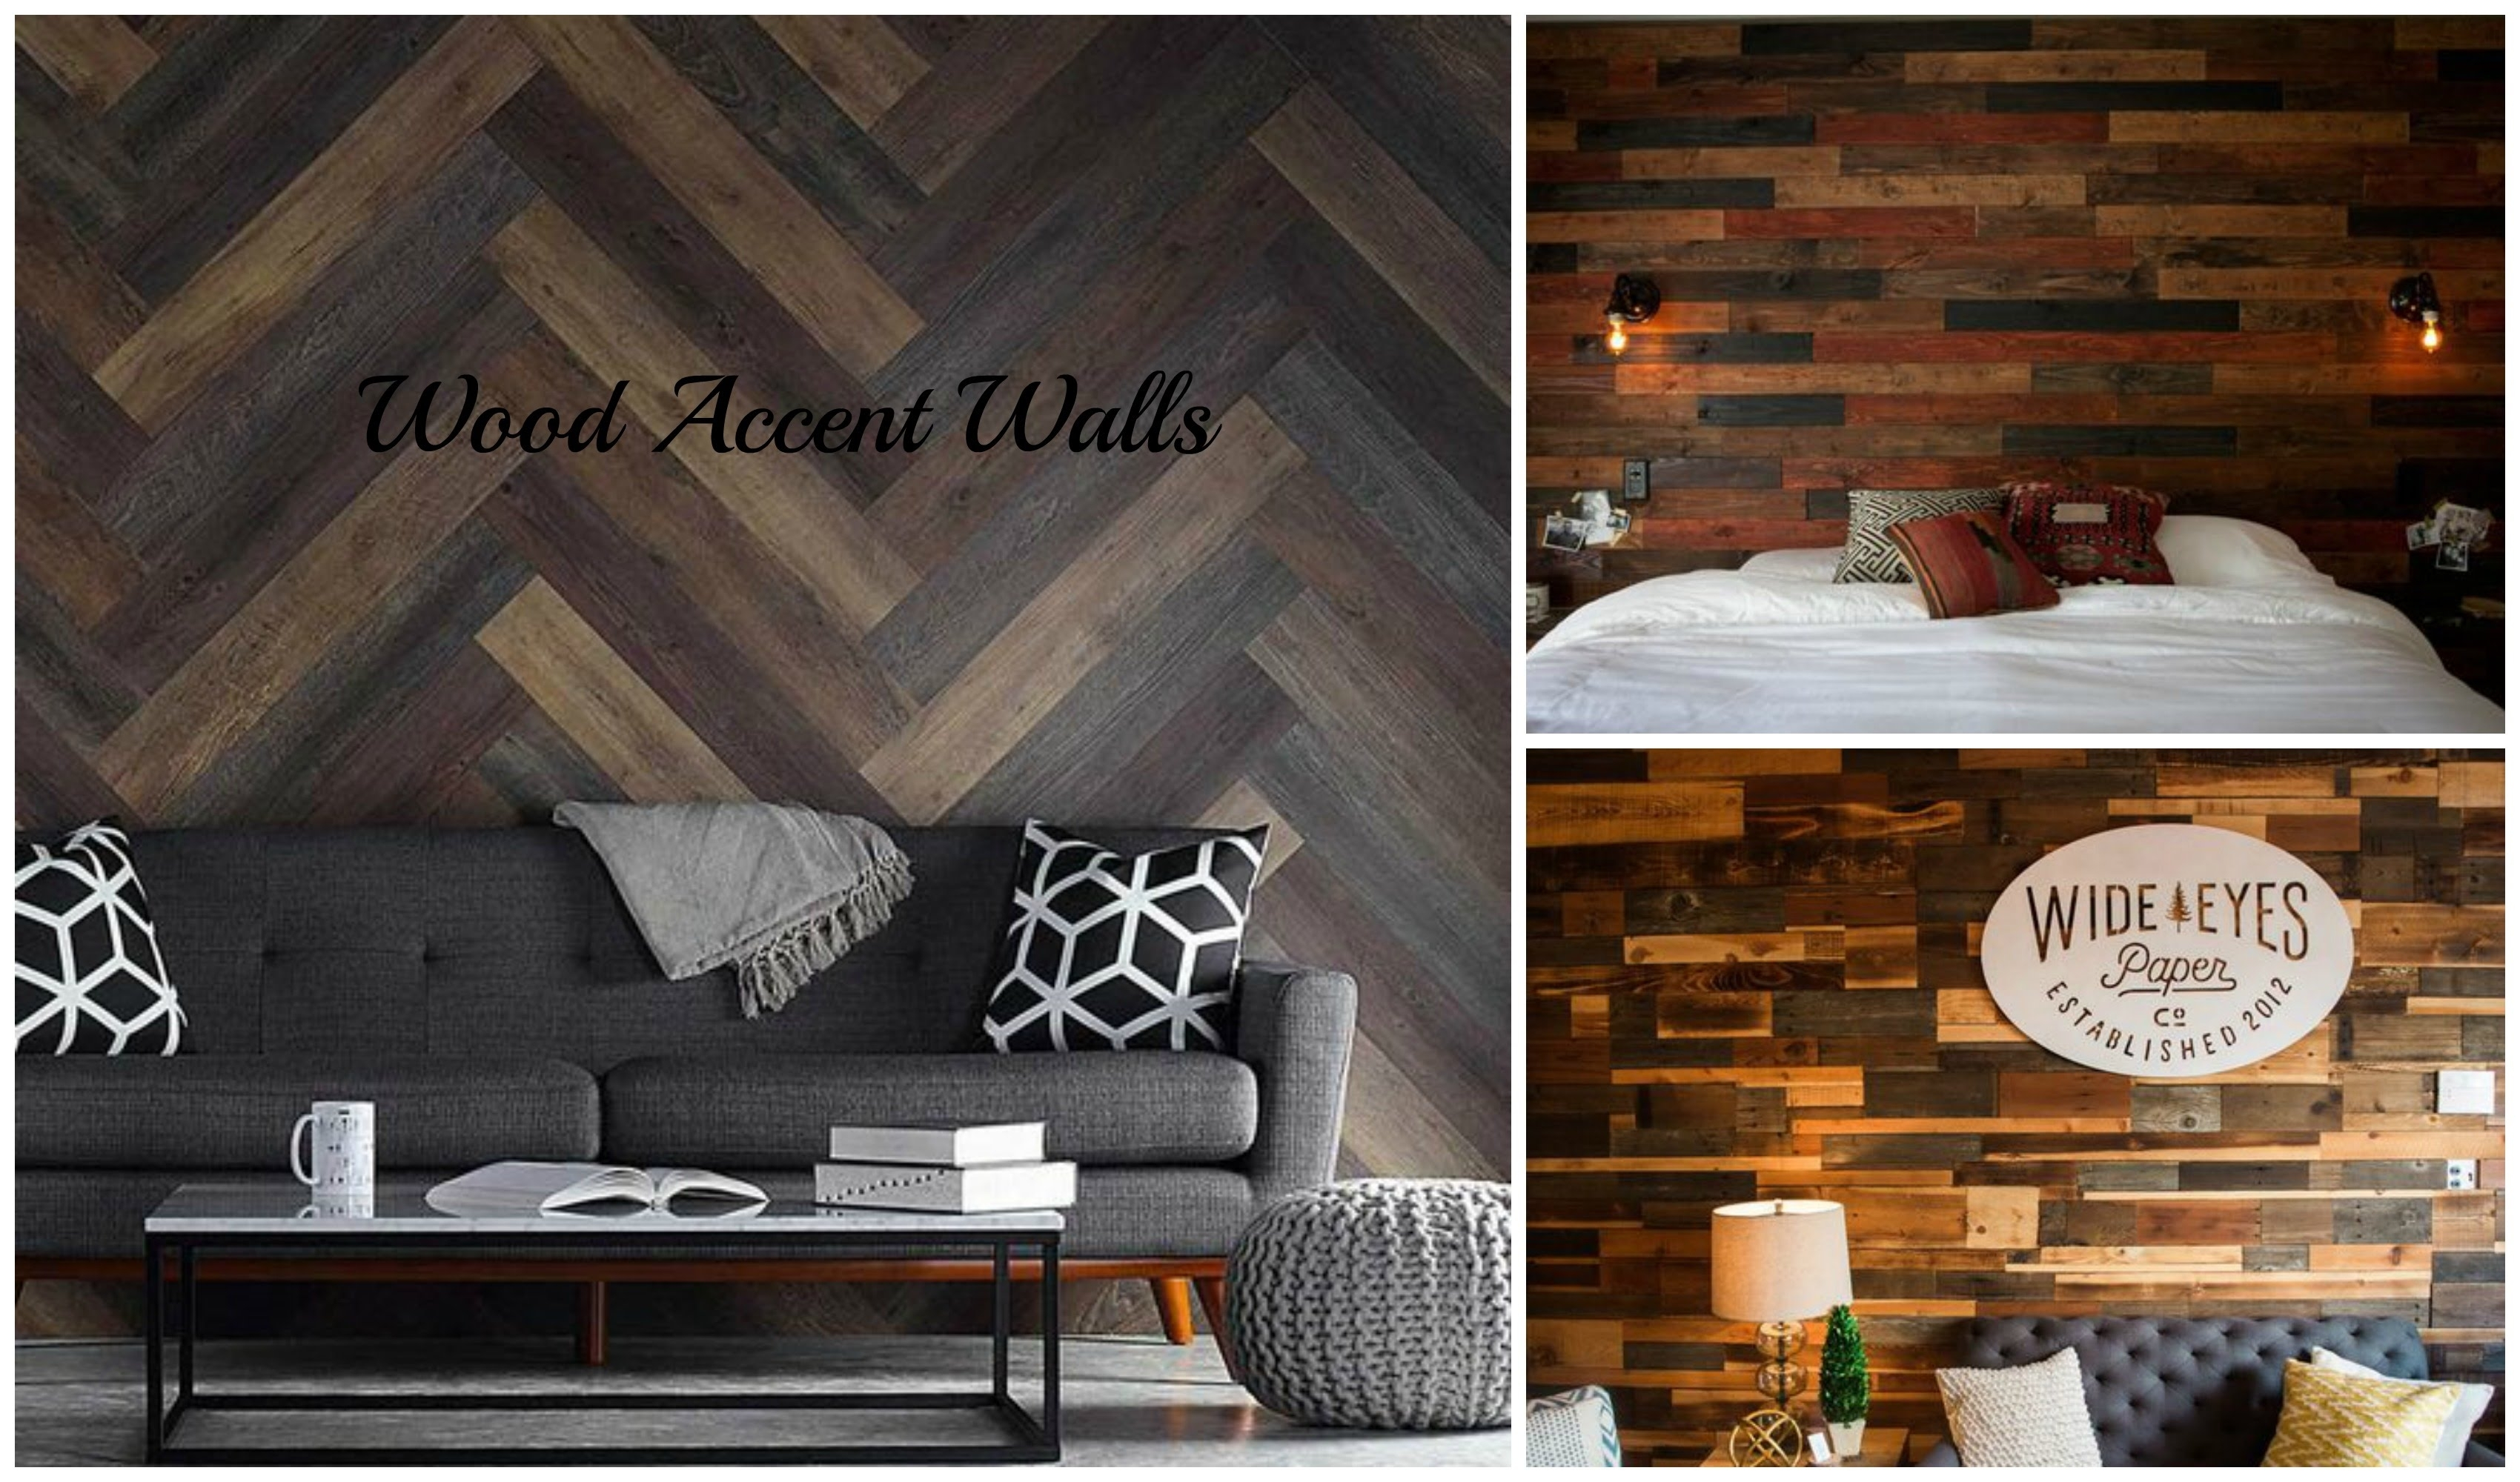 Pallet Accent Wall – Design Decoration Within Most Up To Date Wall Accents With Pallets (View 4 of 15)